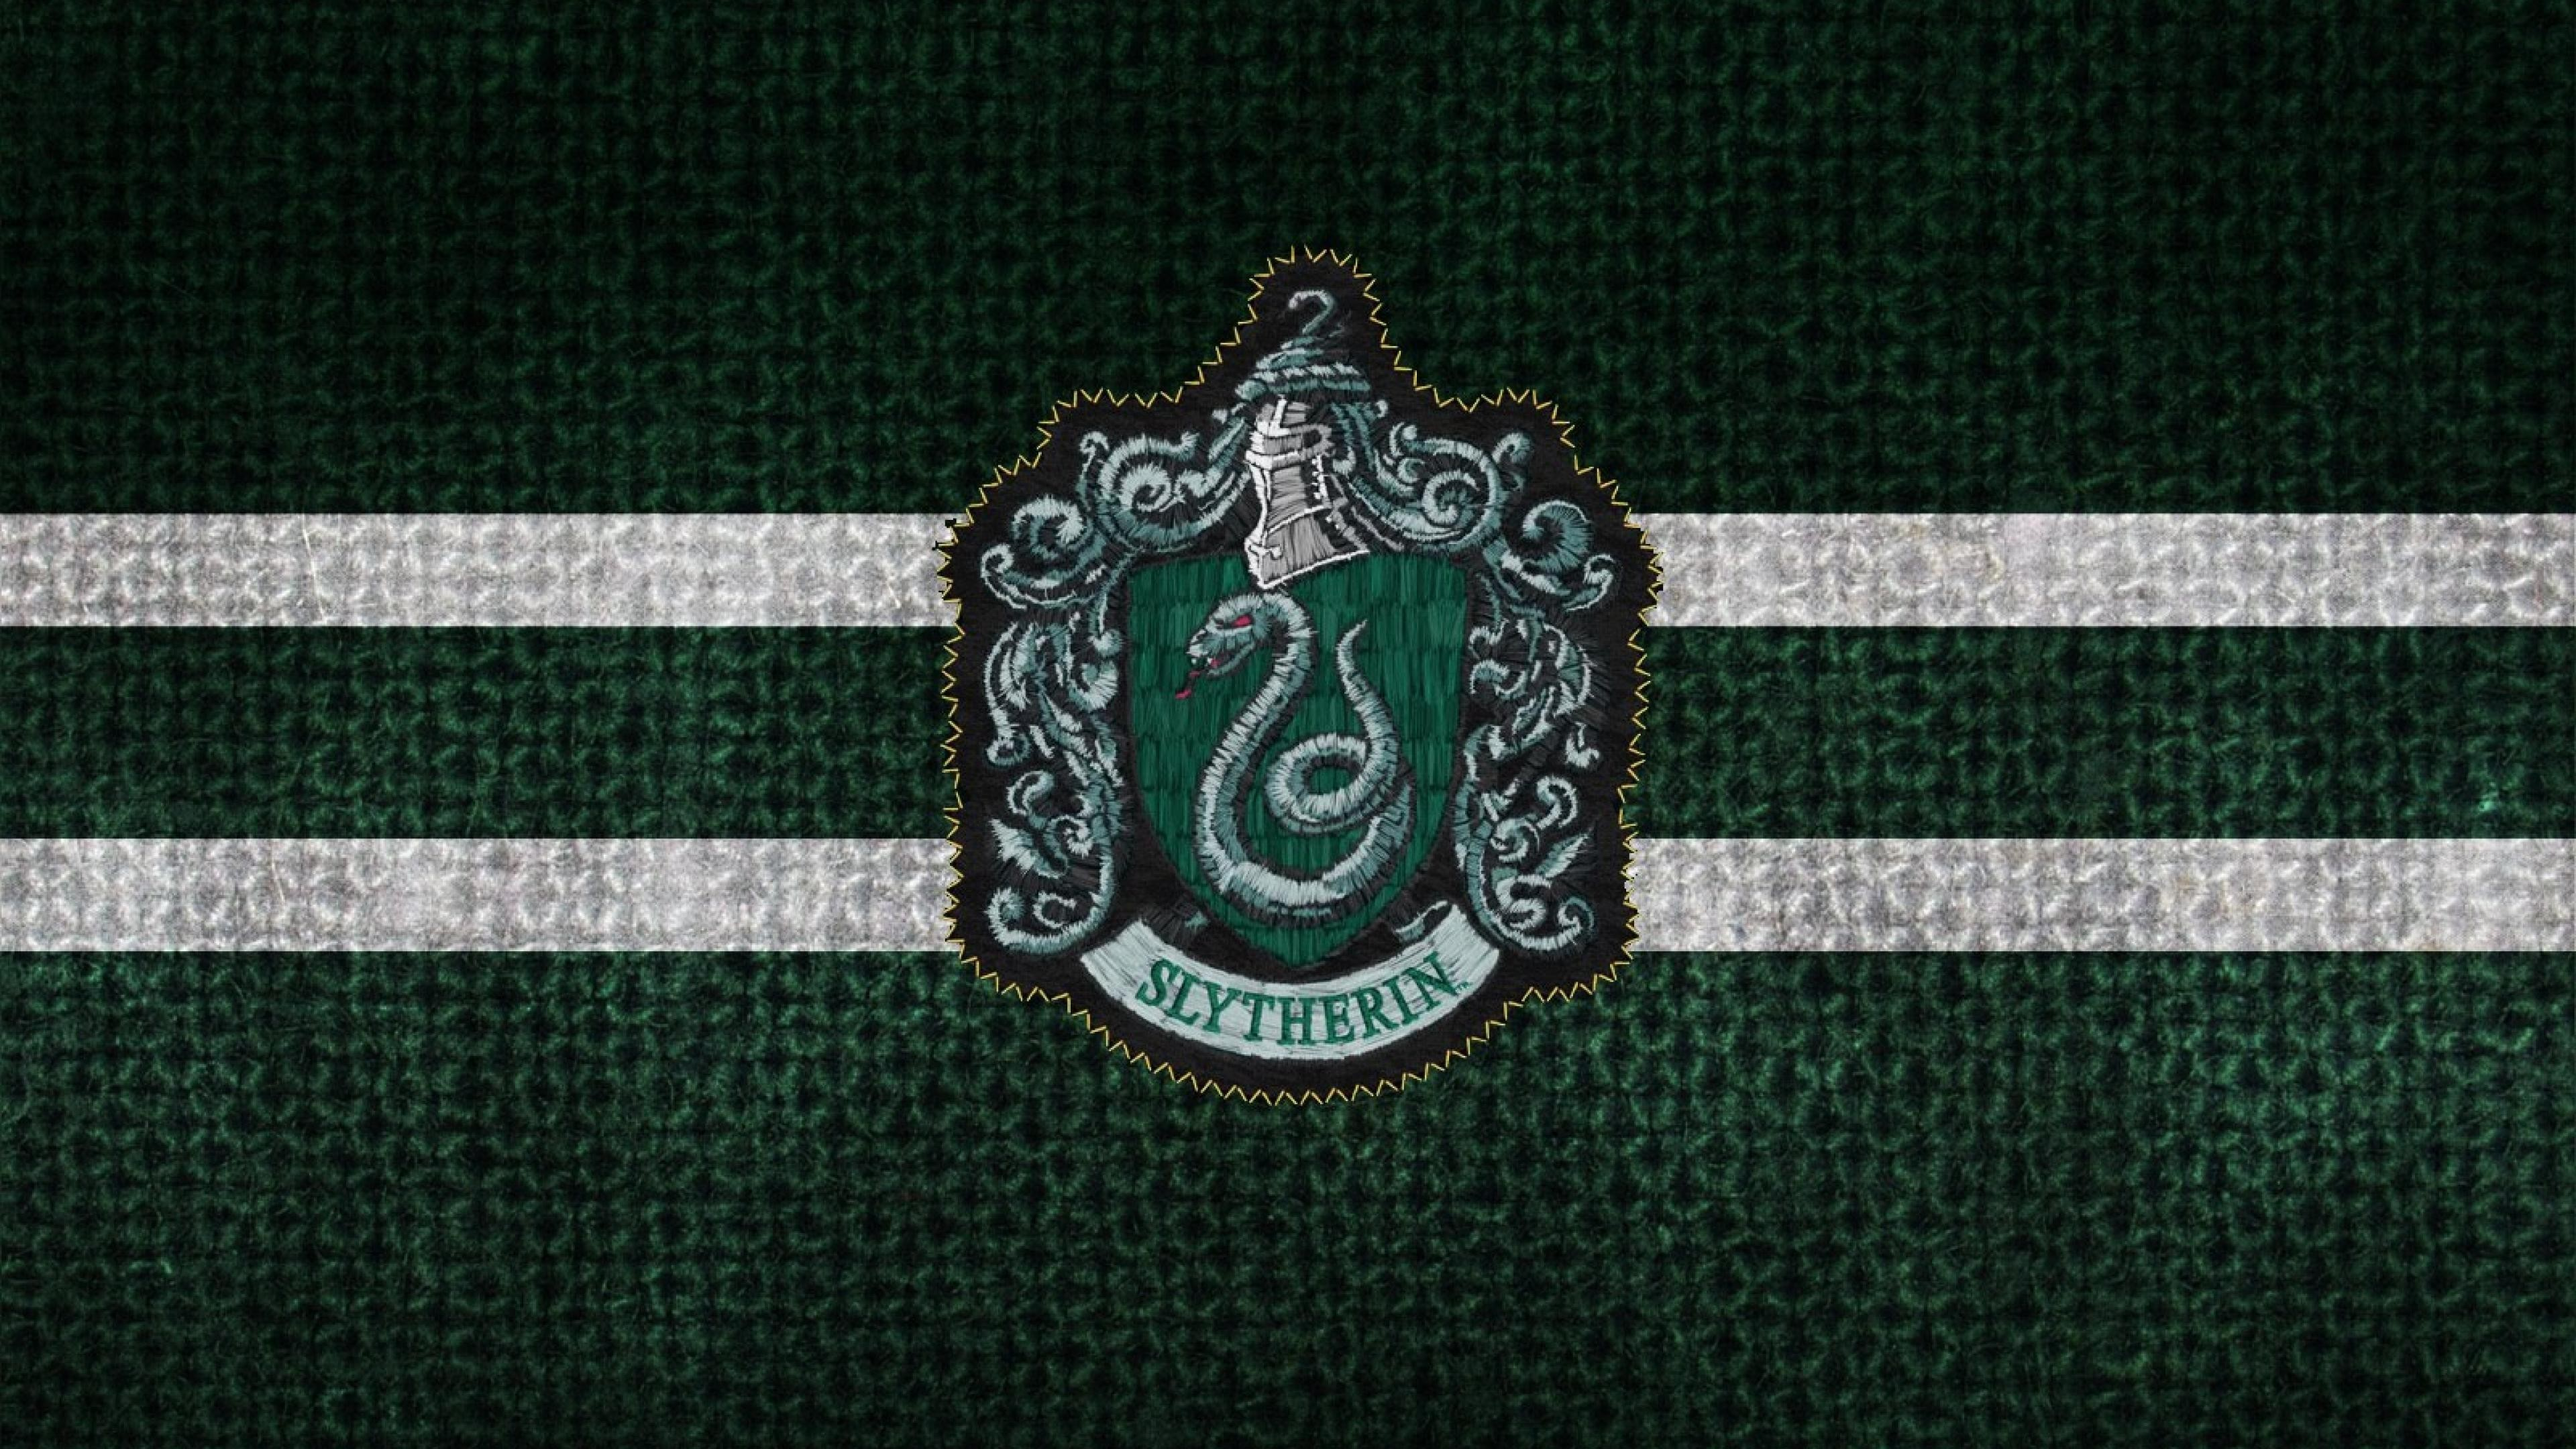 Res: 3840x2160, Gryffindor wallpaper 59+